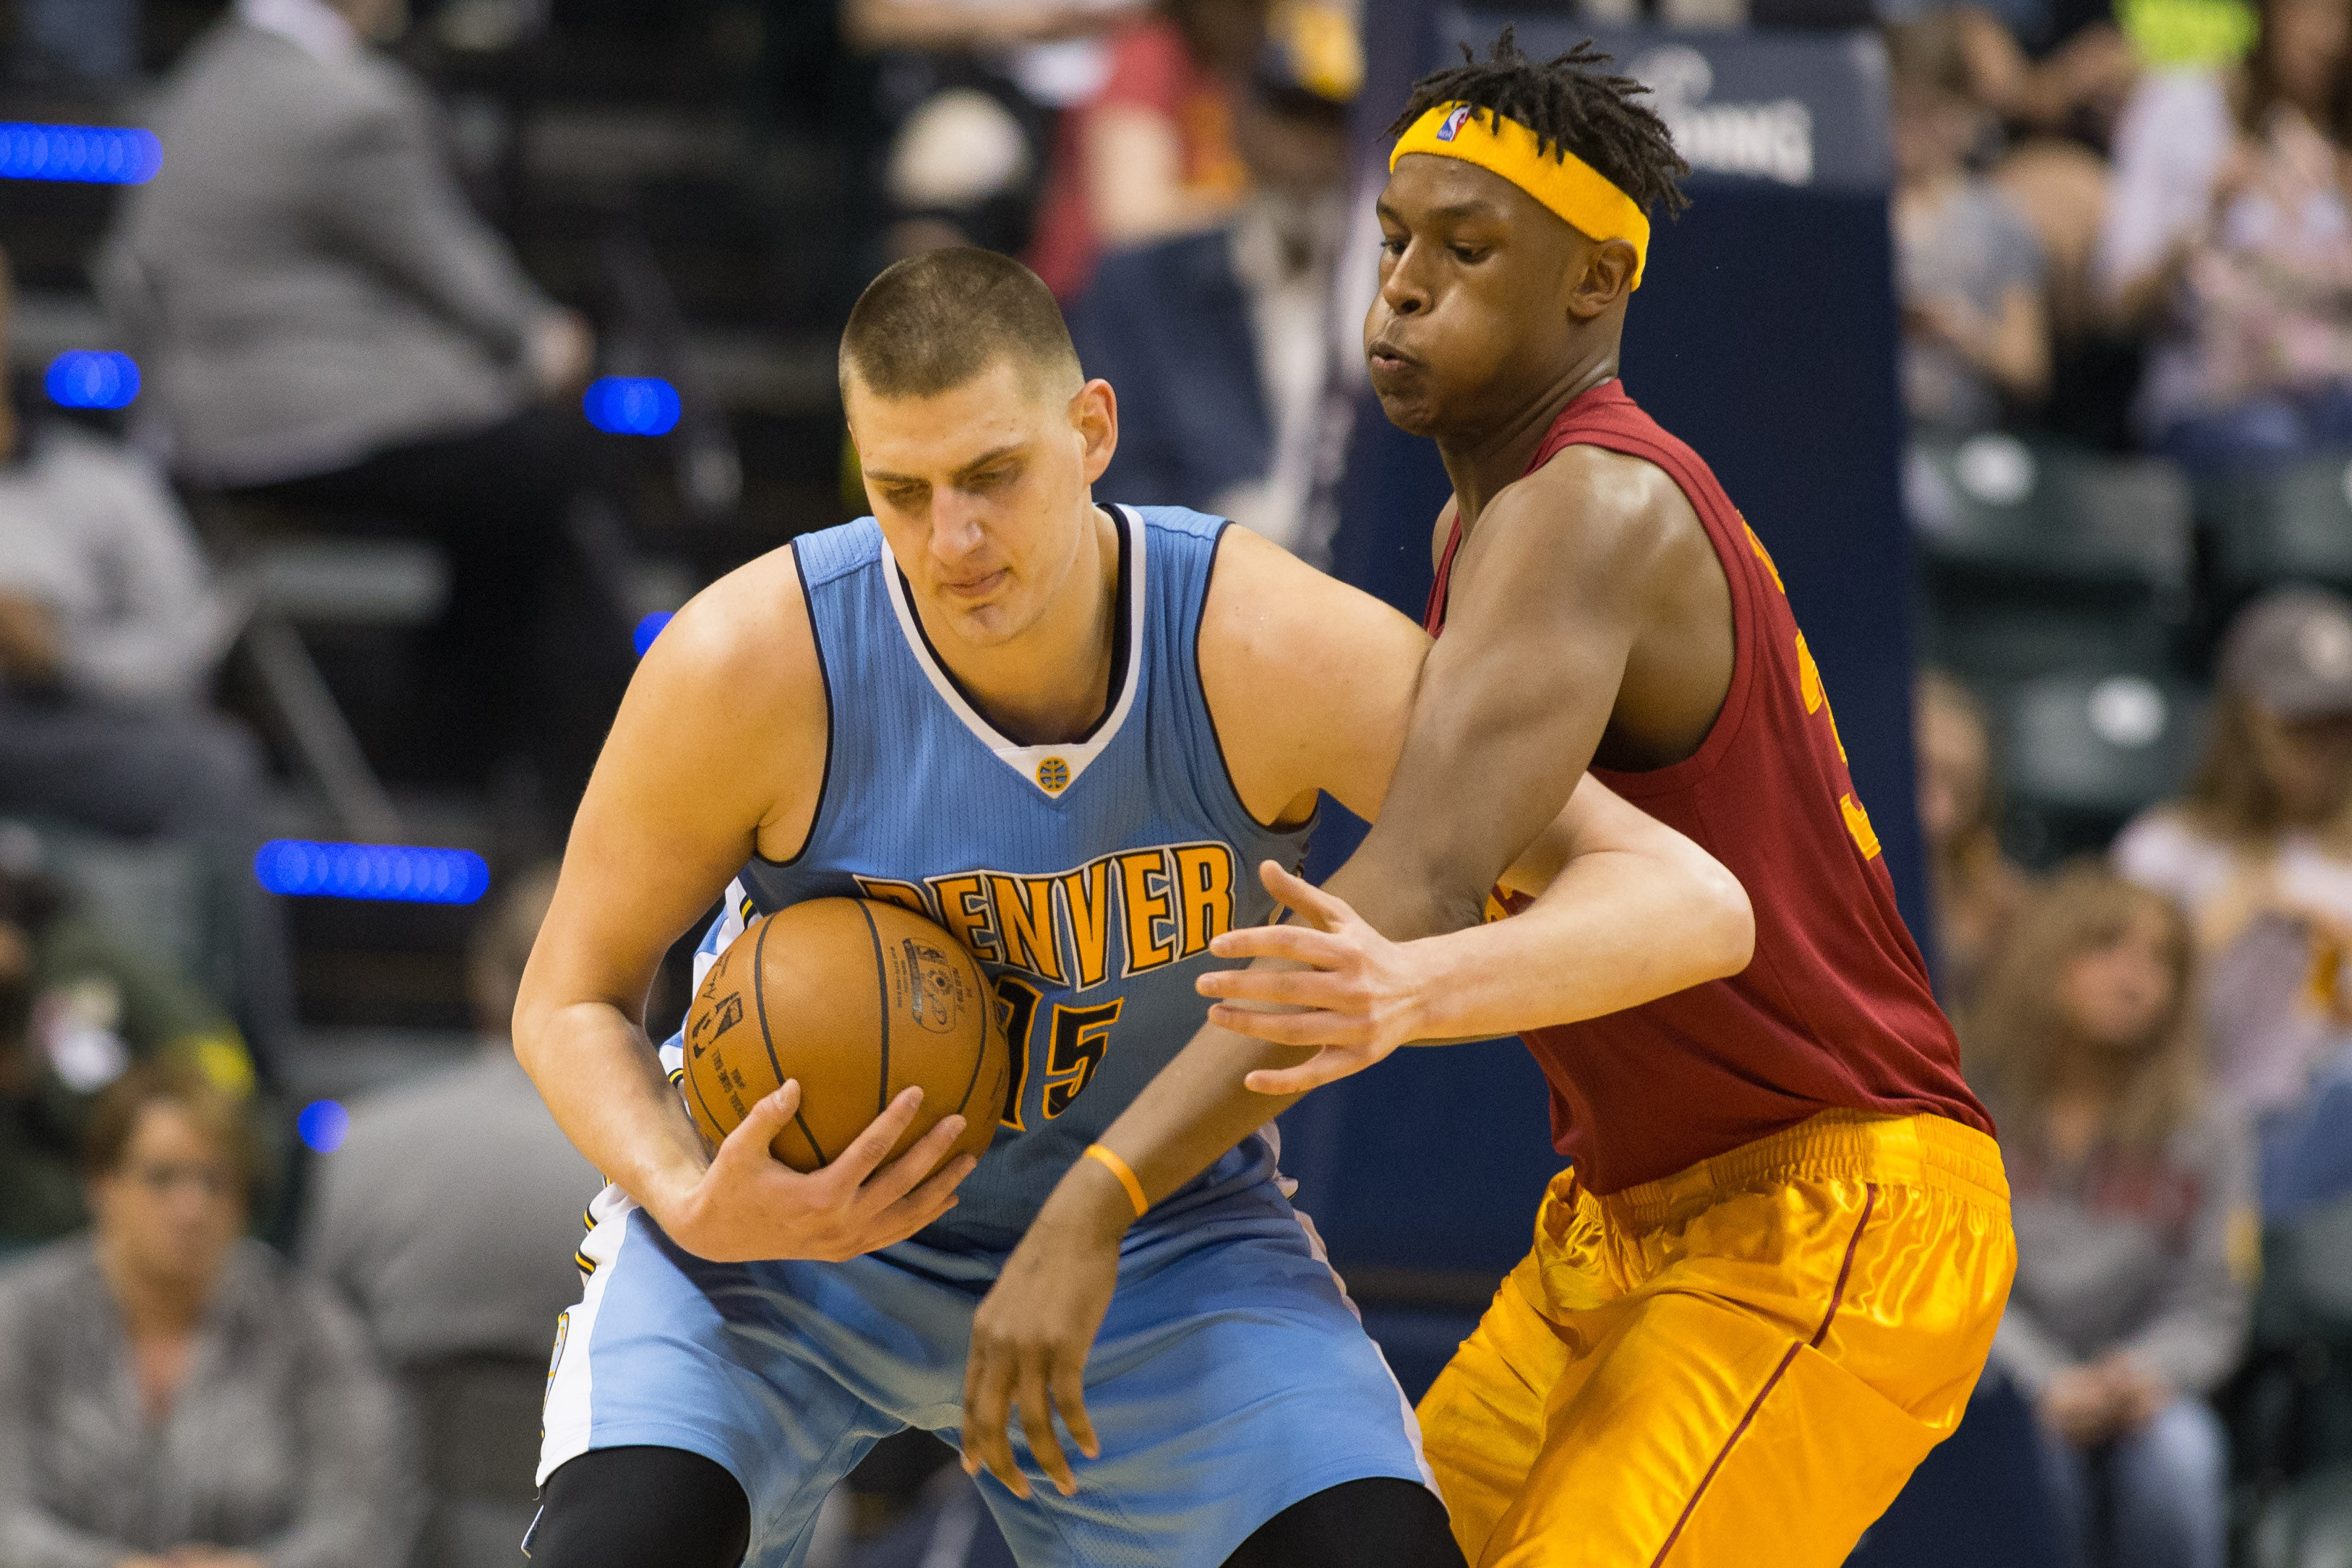 9968754-nba-denver-nuggets-at-indiana-pacers